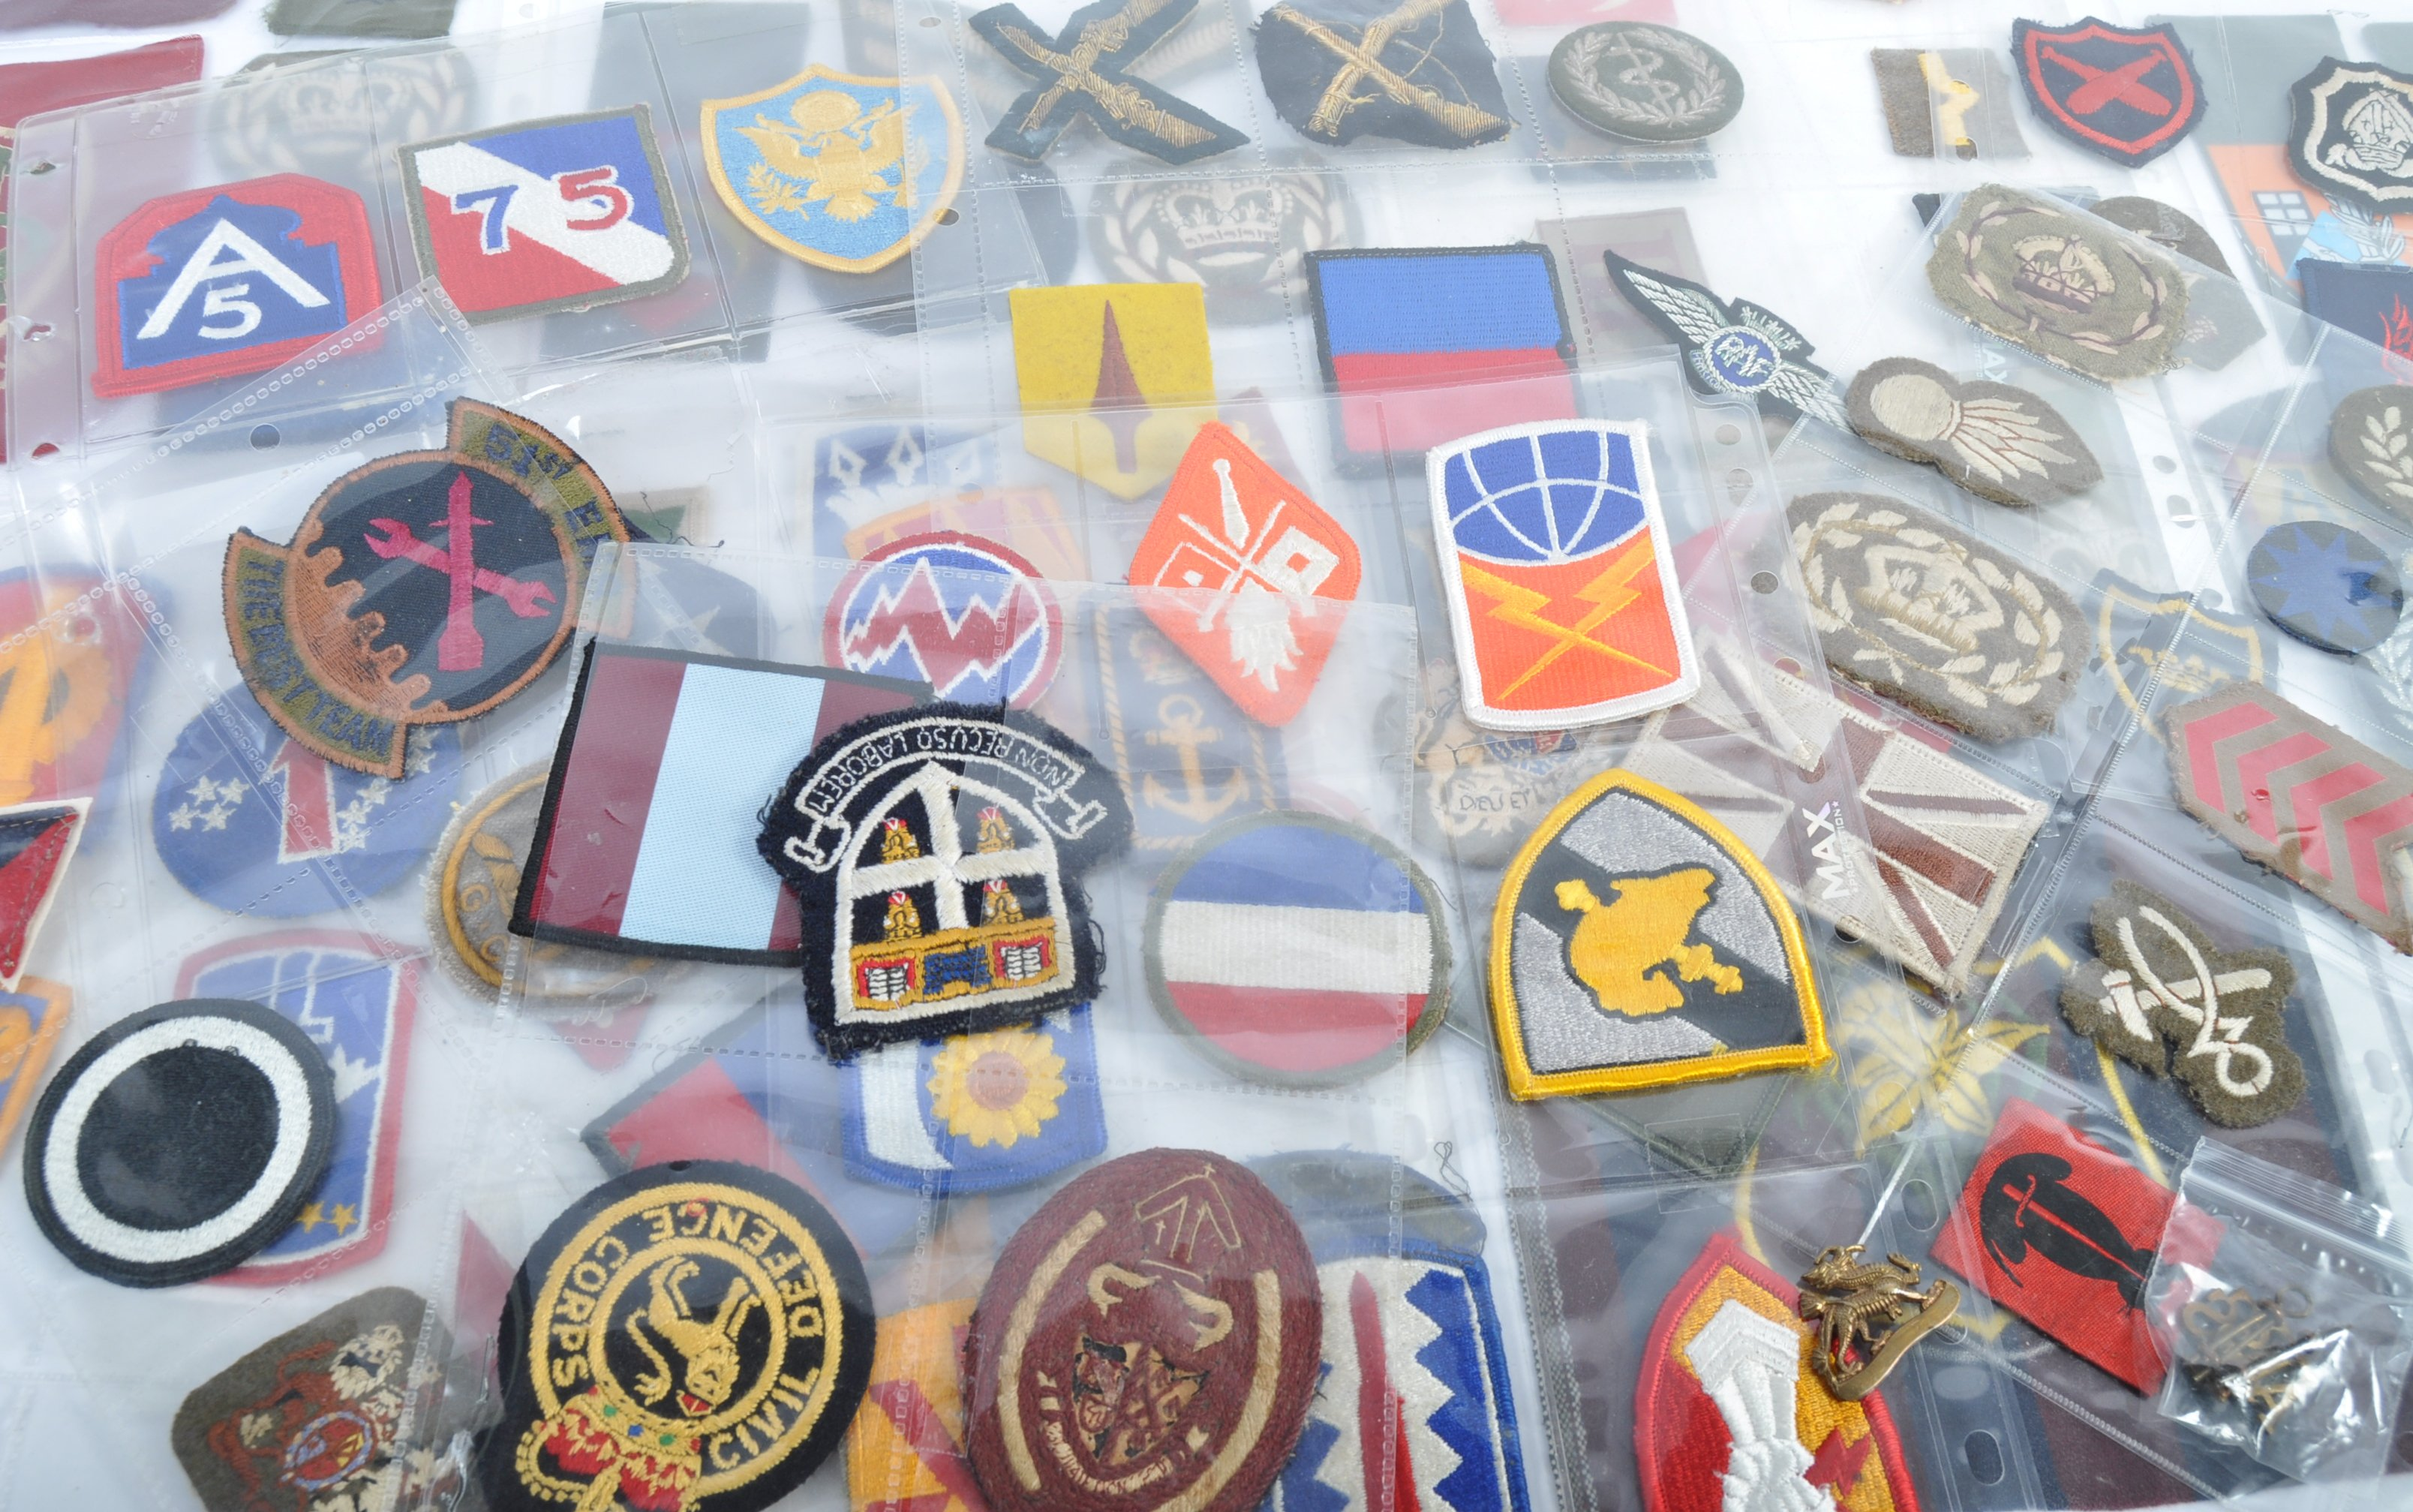 LARGE COLLECTION OF VINTAGE BRITISH ARMY DIVISIONA - Image 3 of 5